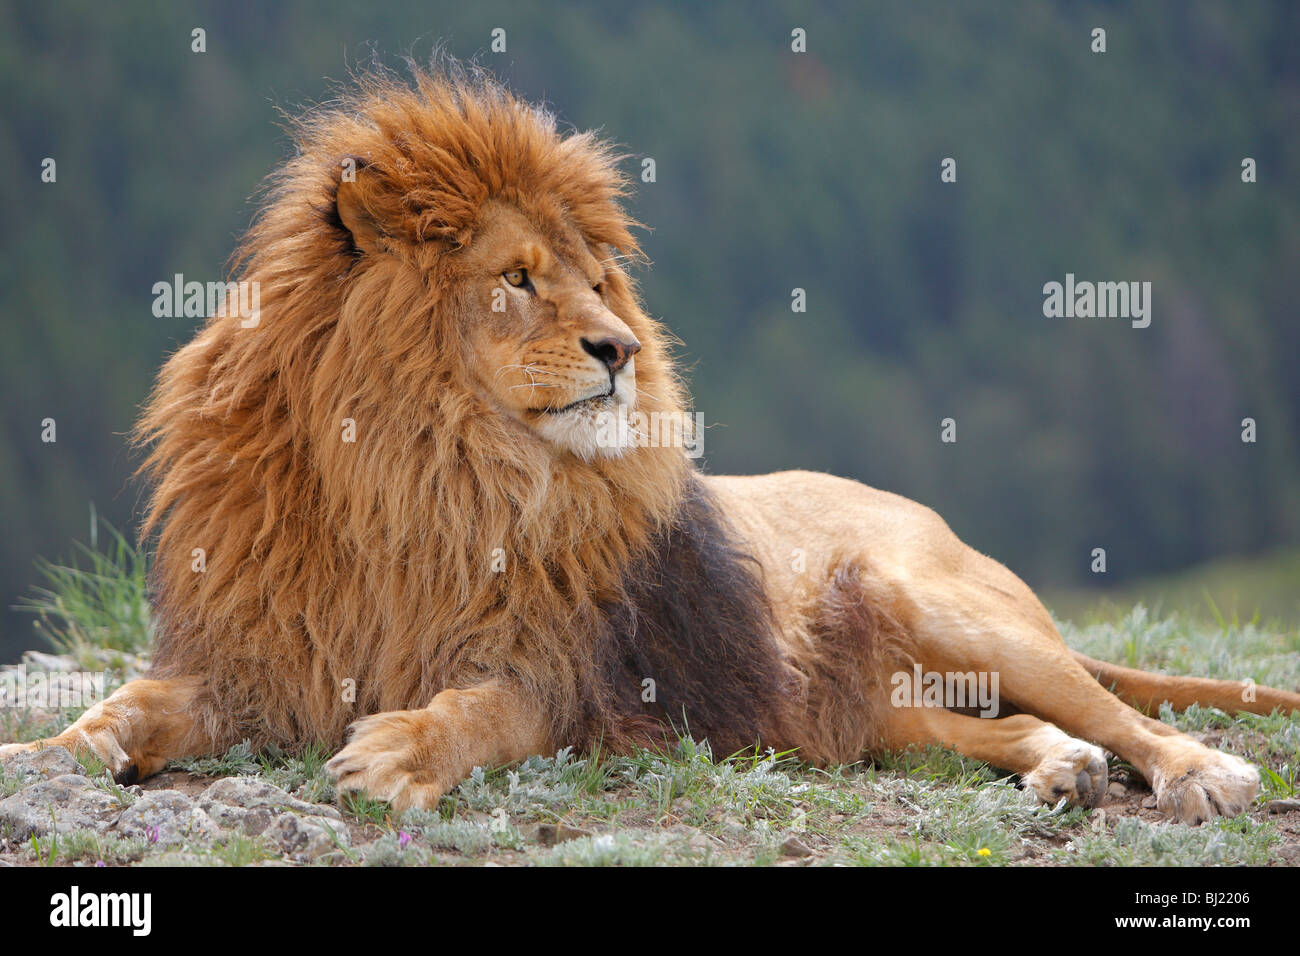 barbary lion panthera leo leo lying male stock photo 28319654 alamy. Black Bedroom Furniture Sets. Home Design Ideas